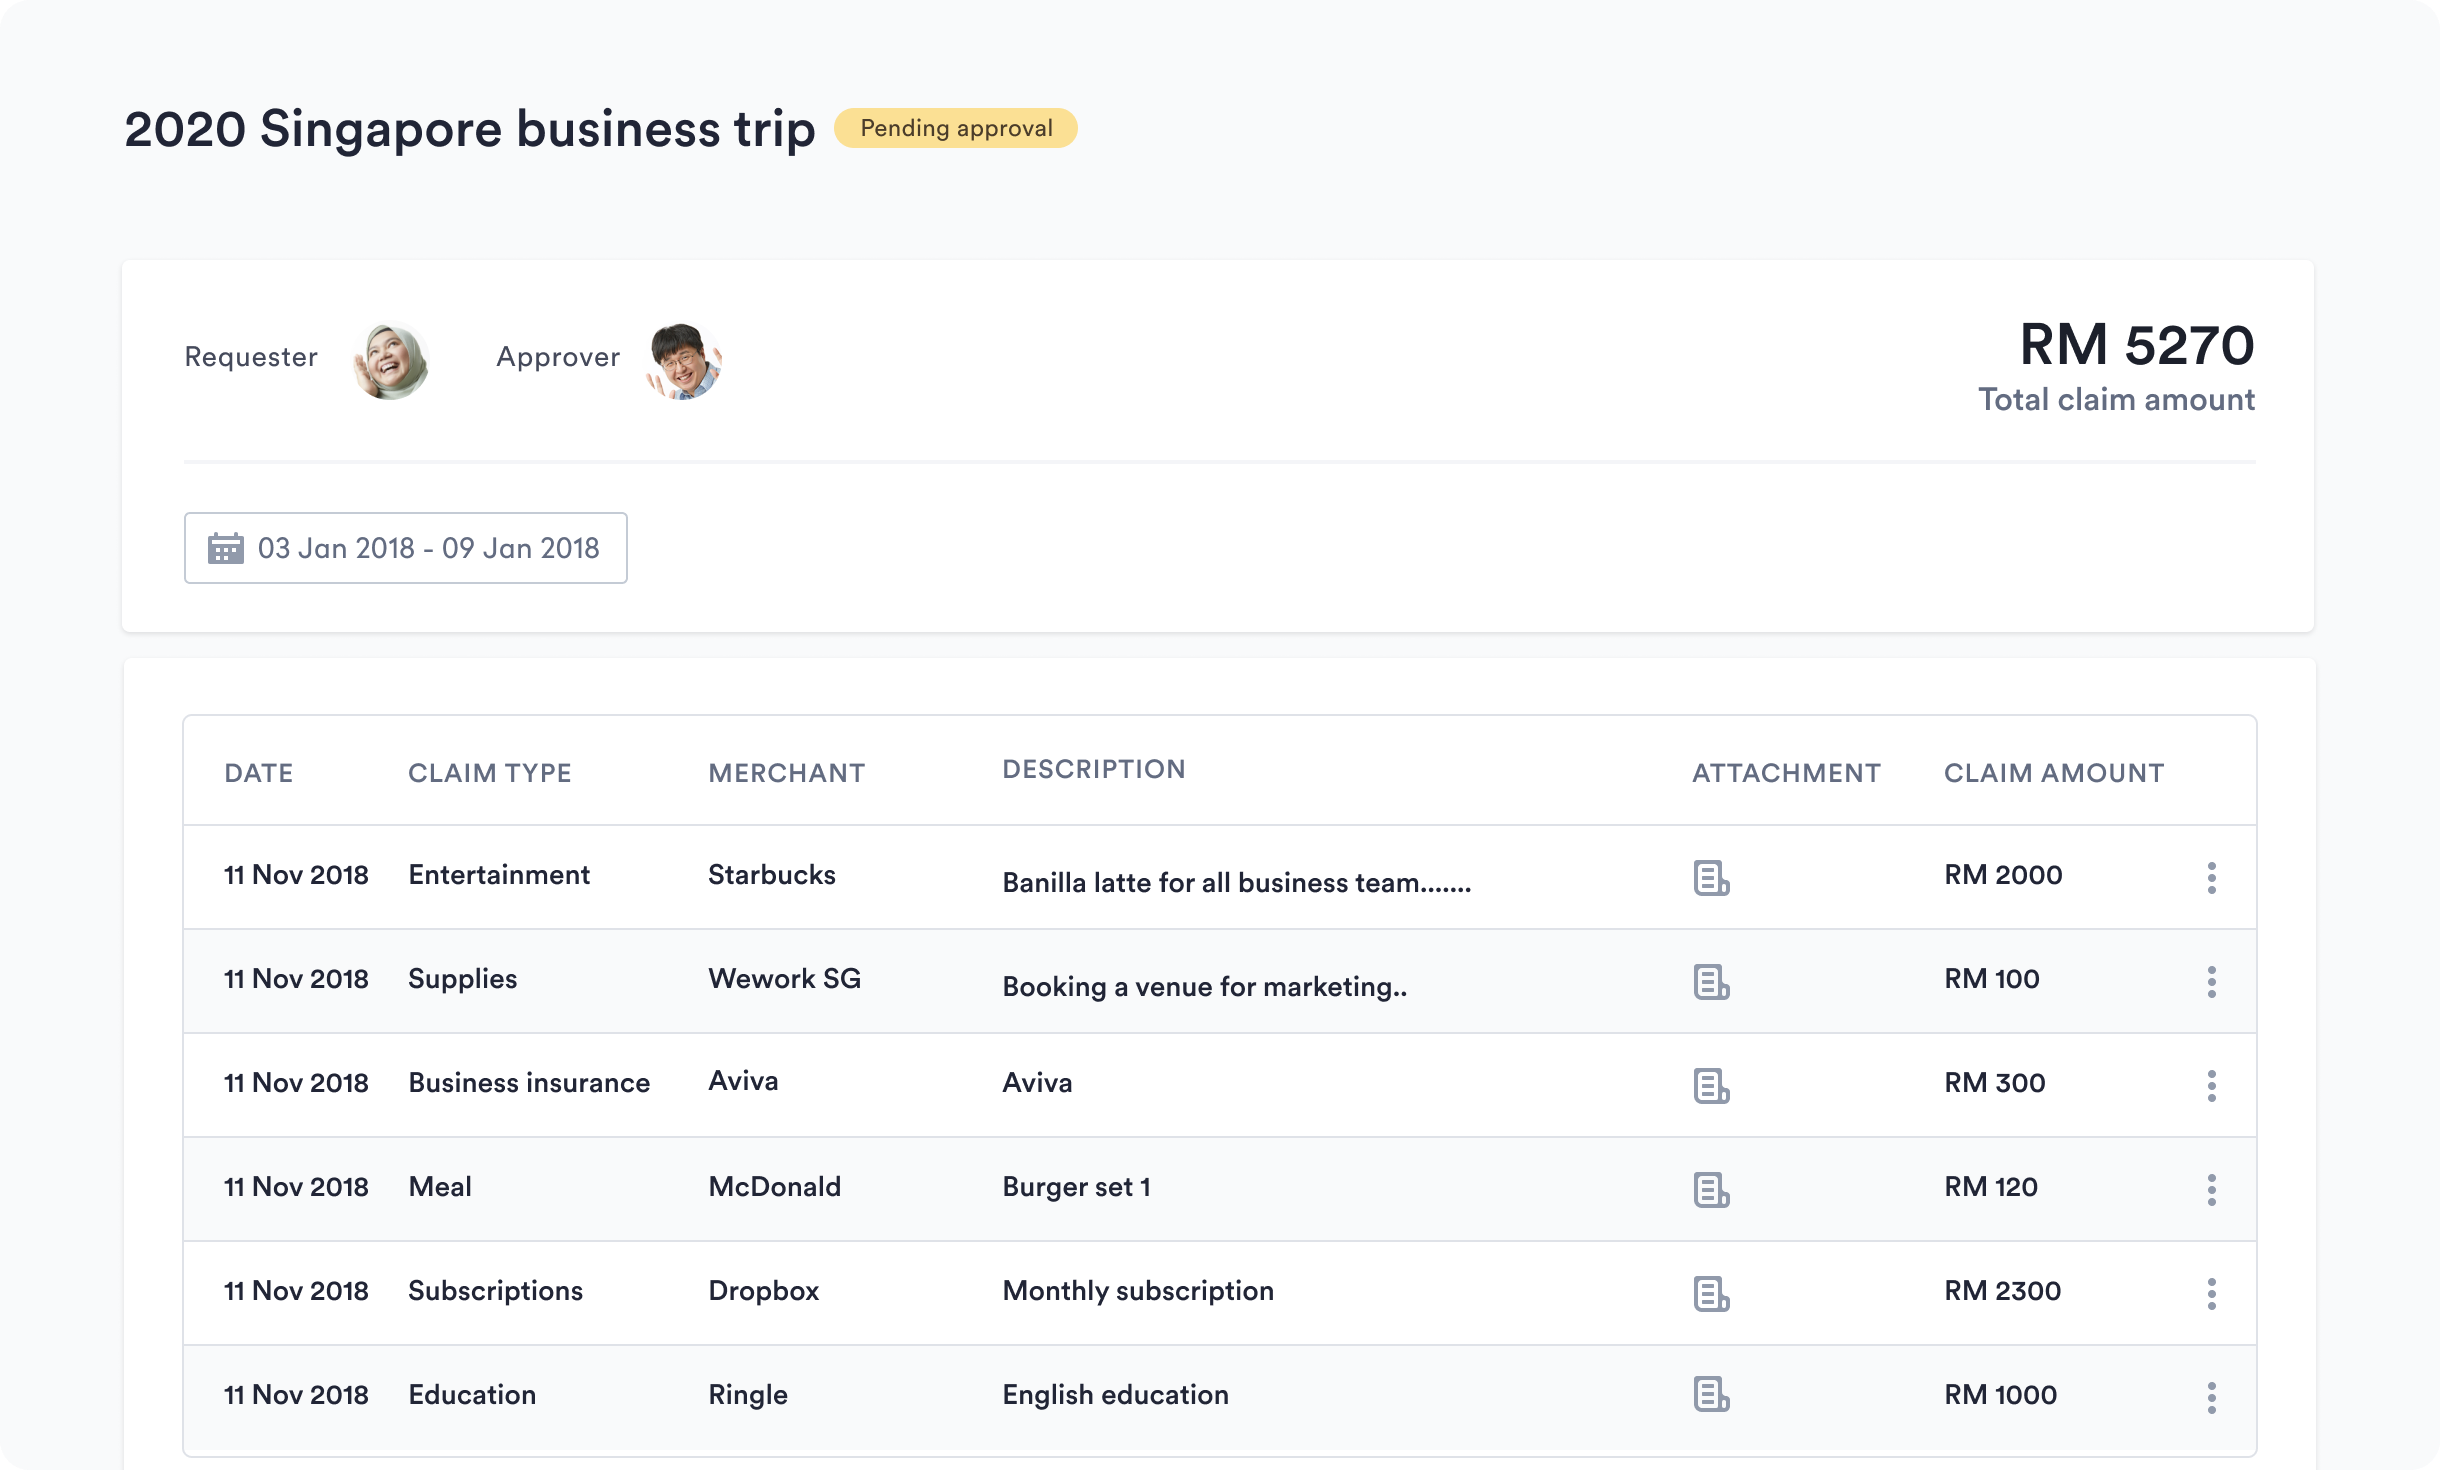 Swingvy Employee Expense Claims Software submission dashboard view